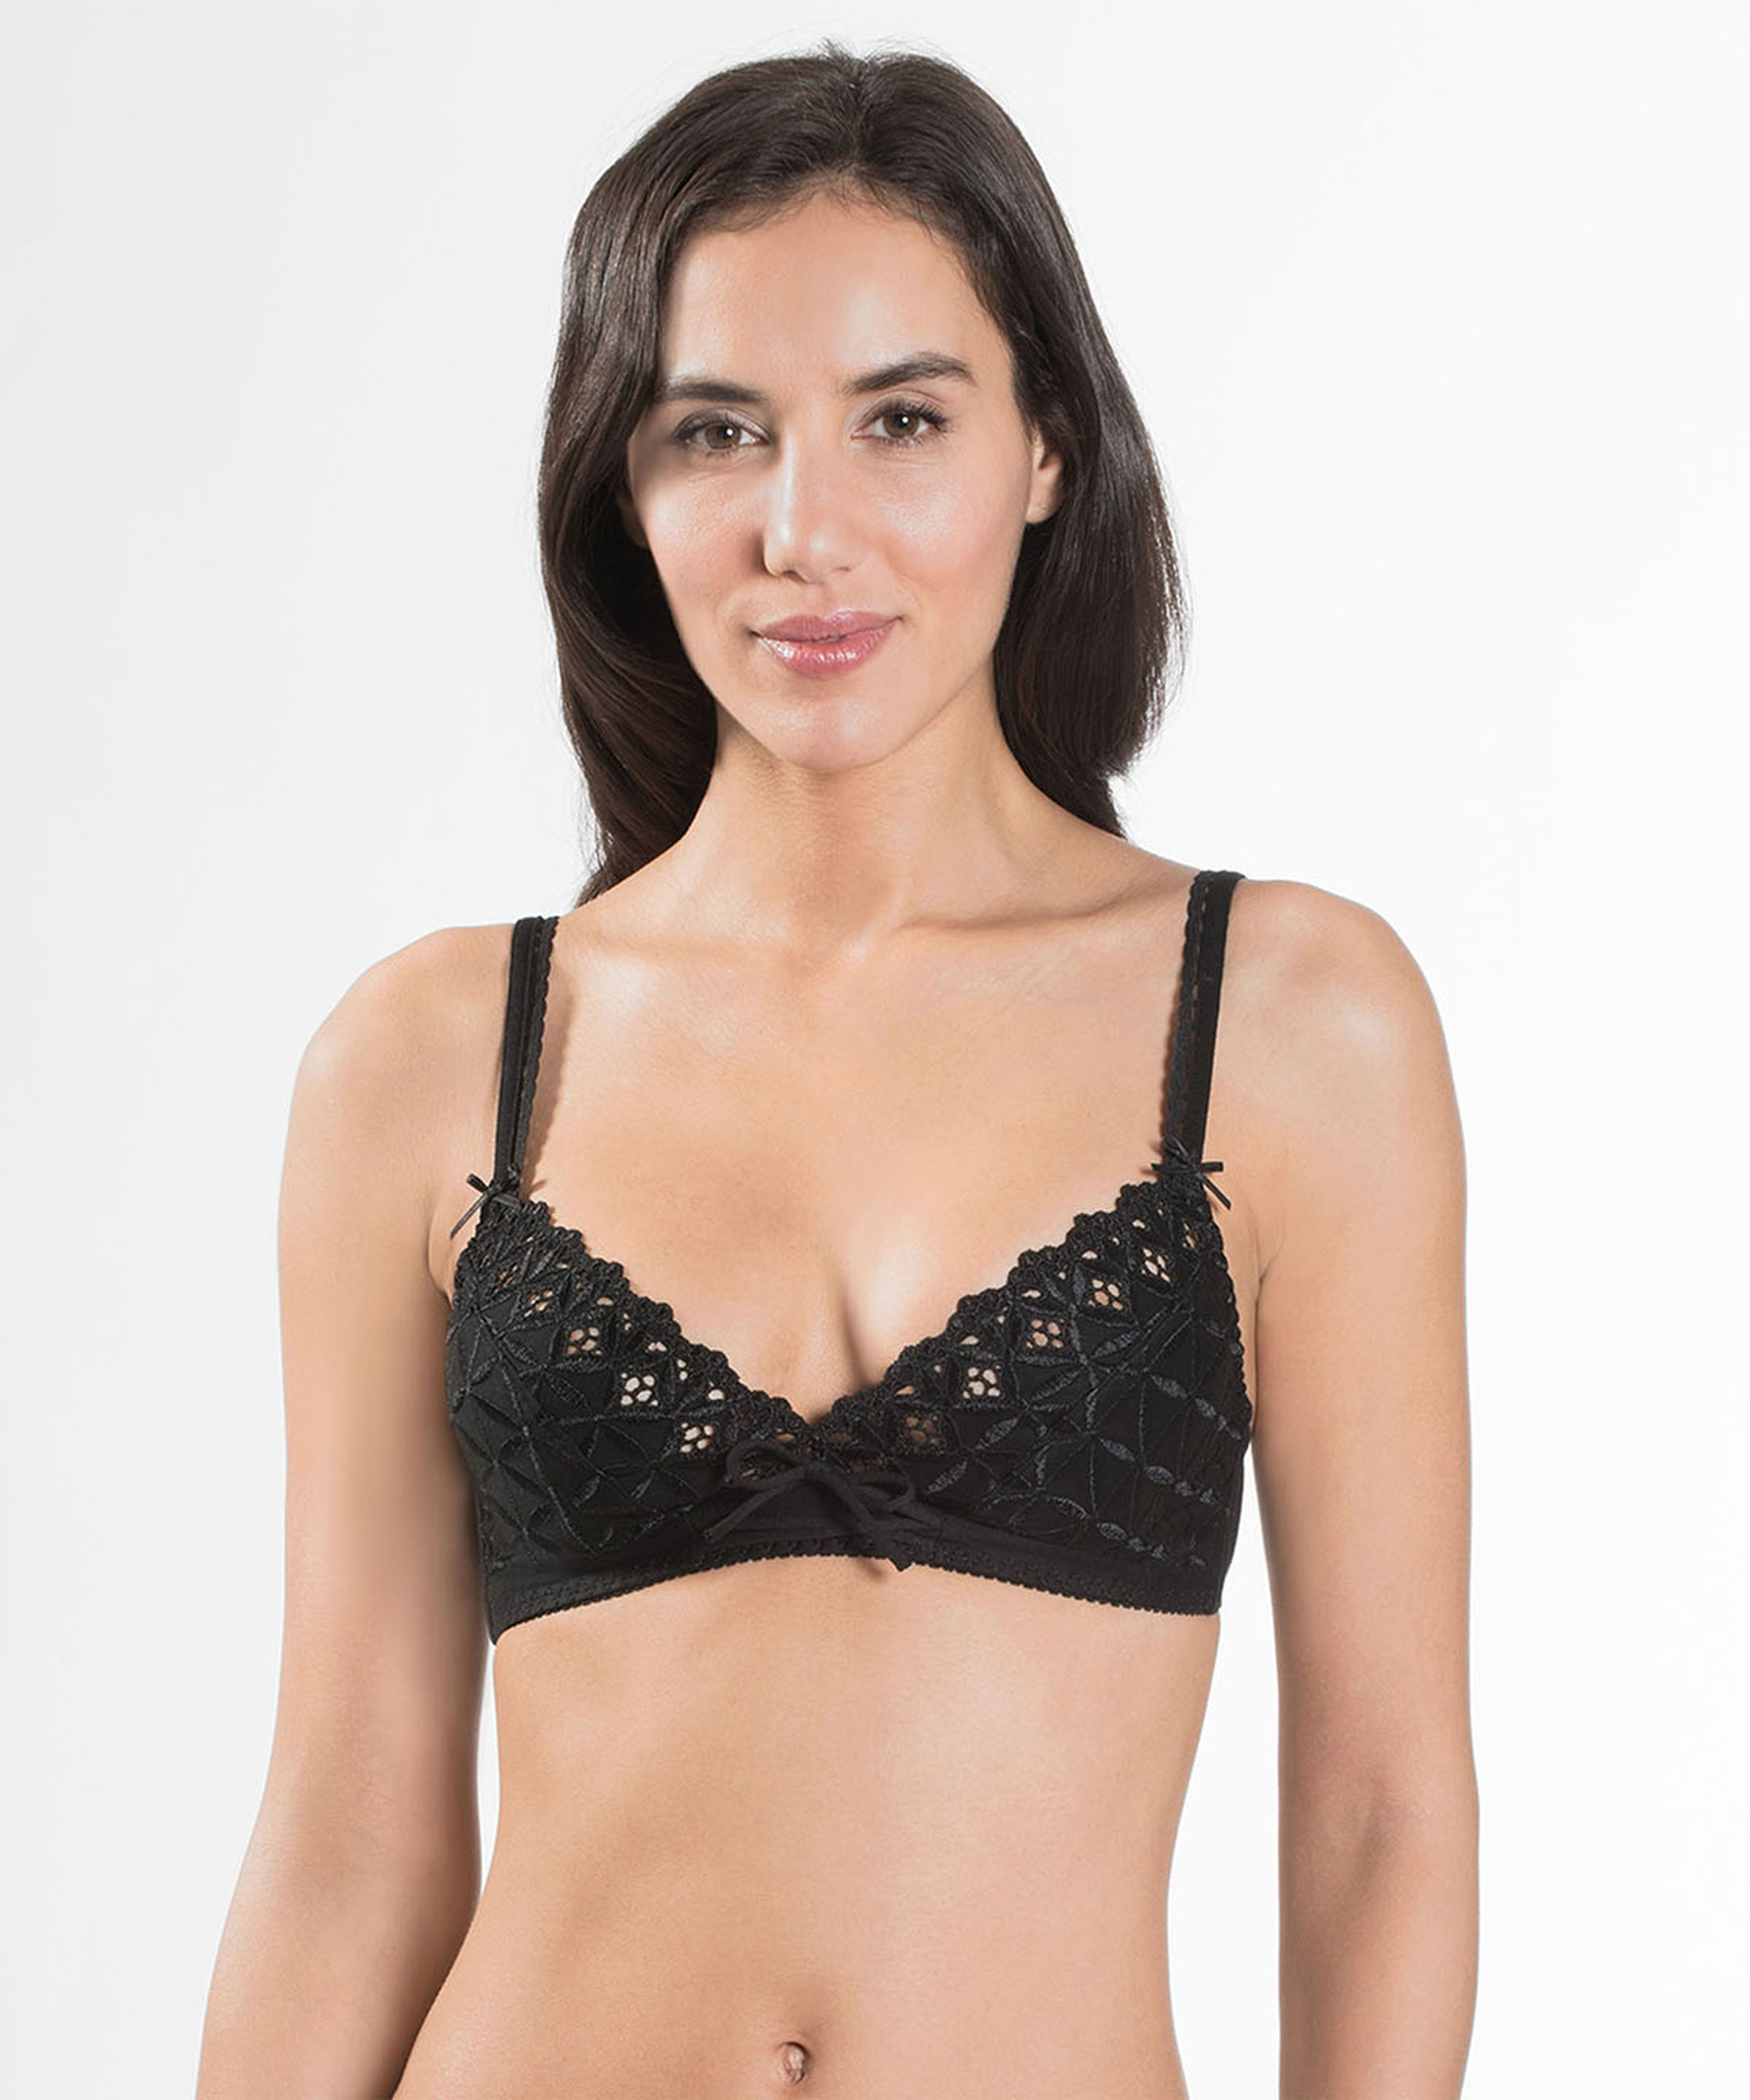 BAHIA Triangle Bra Black | Aubade